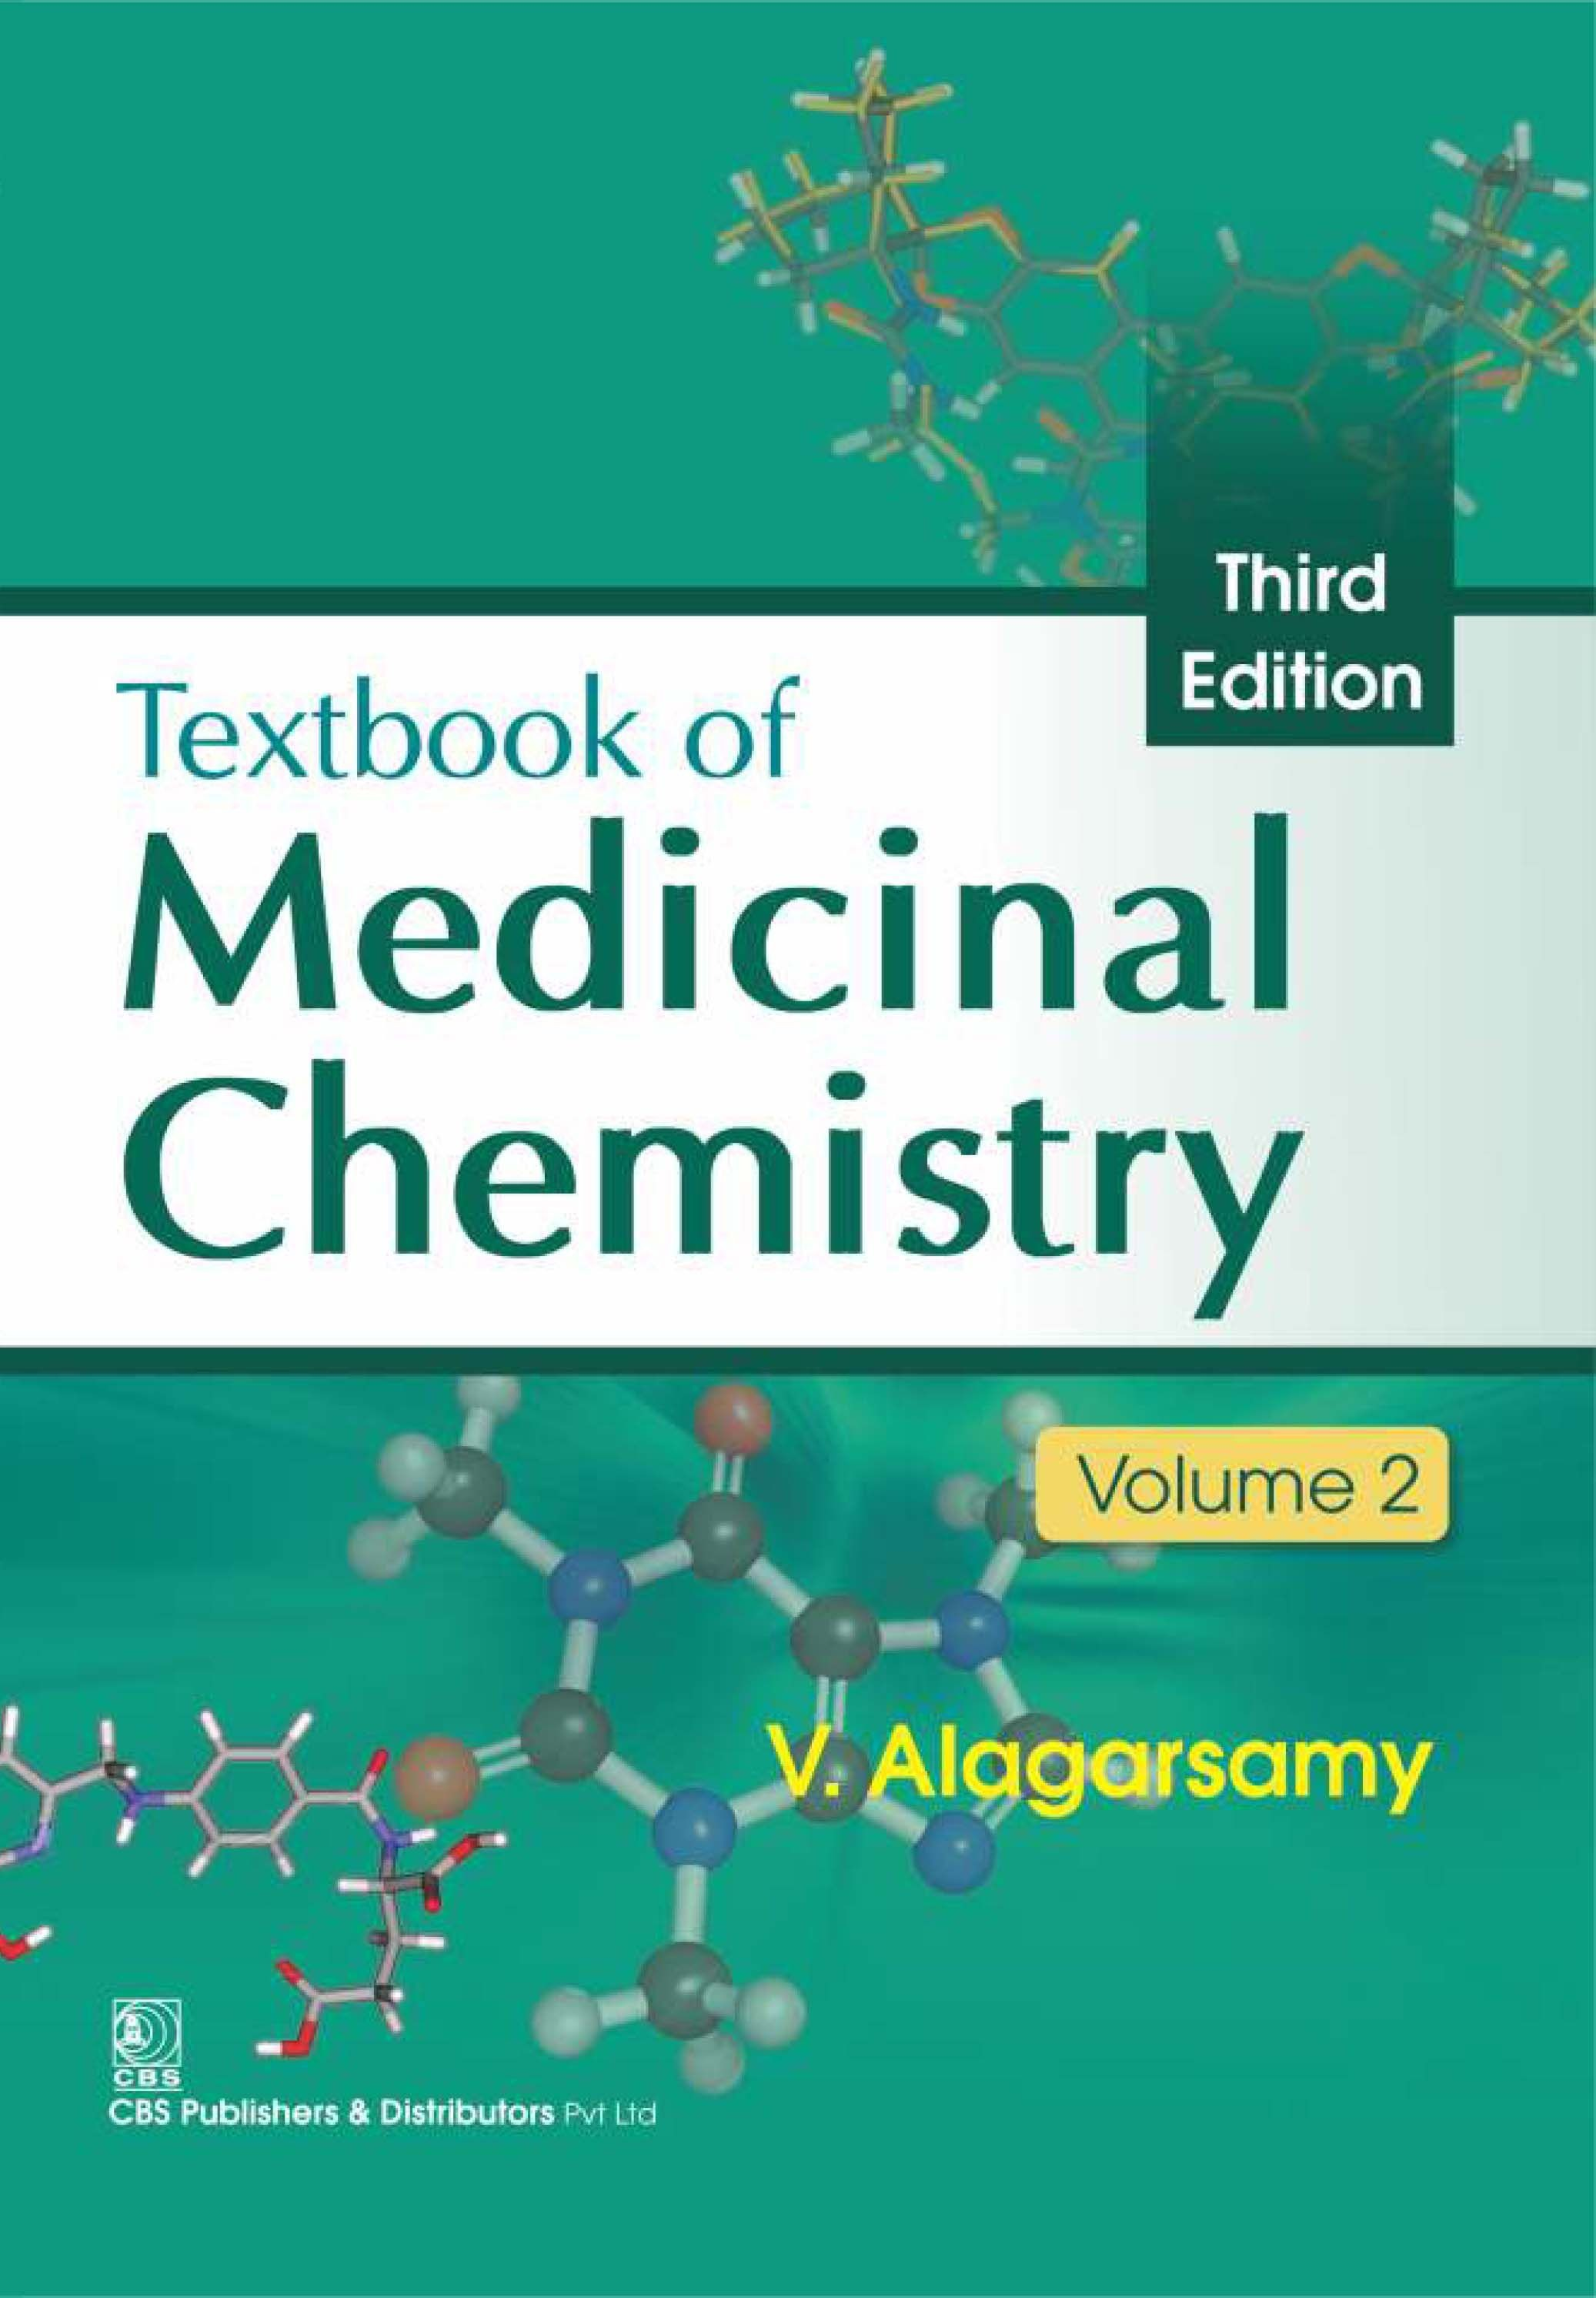 Textbook of Medicinal Chemistry, 3/e, Volume 2 (2nd reprint)